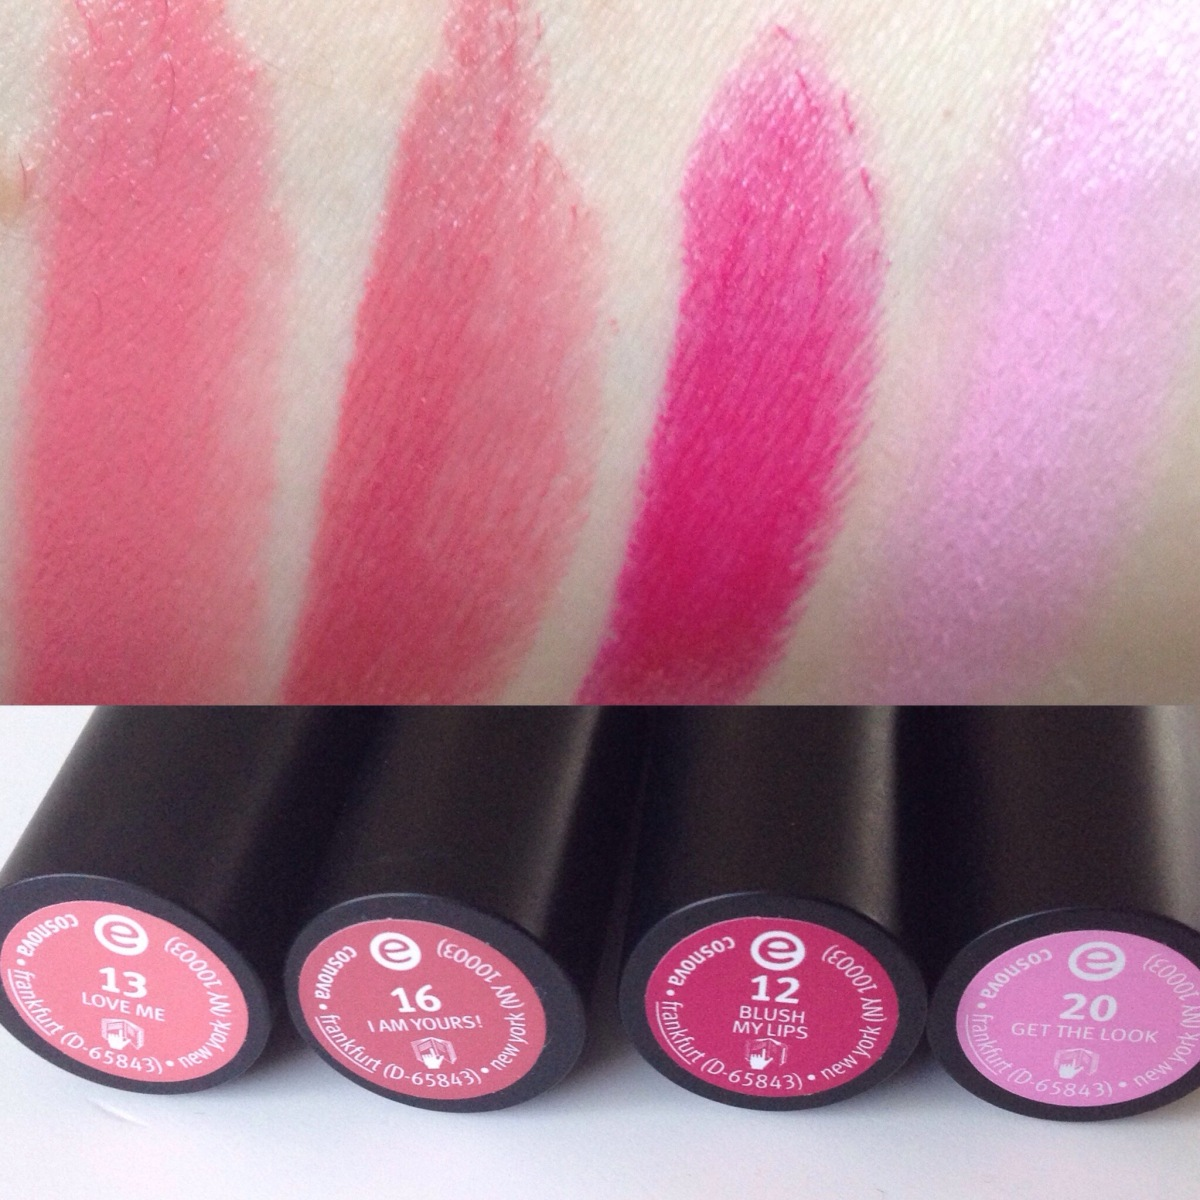 Essence Cosmetics Lipsticks- Review and Swatches